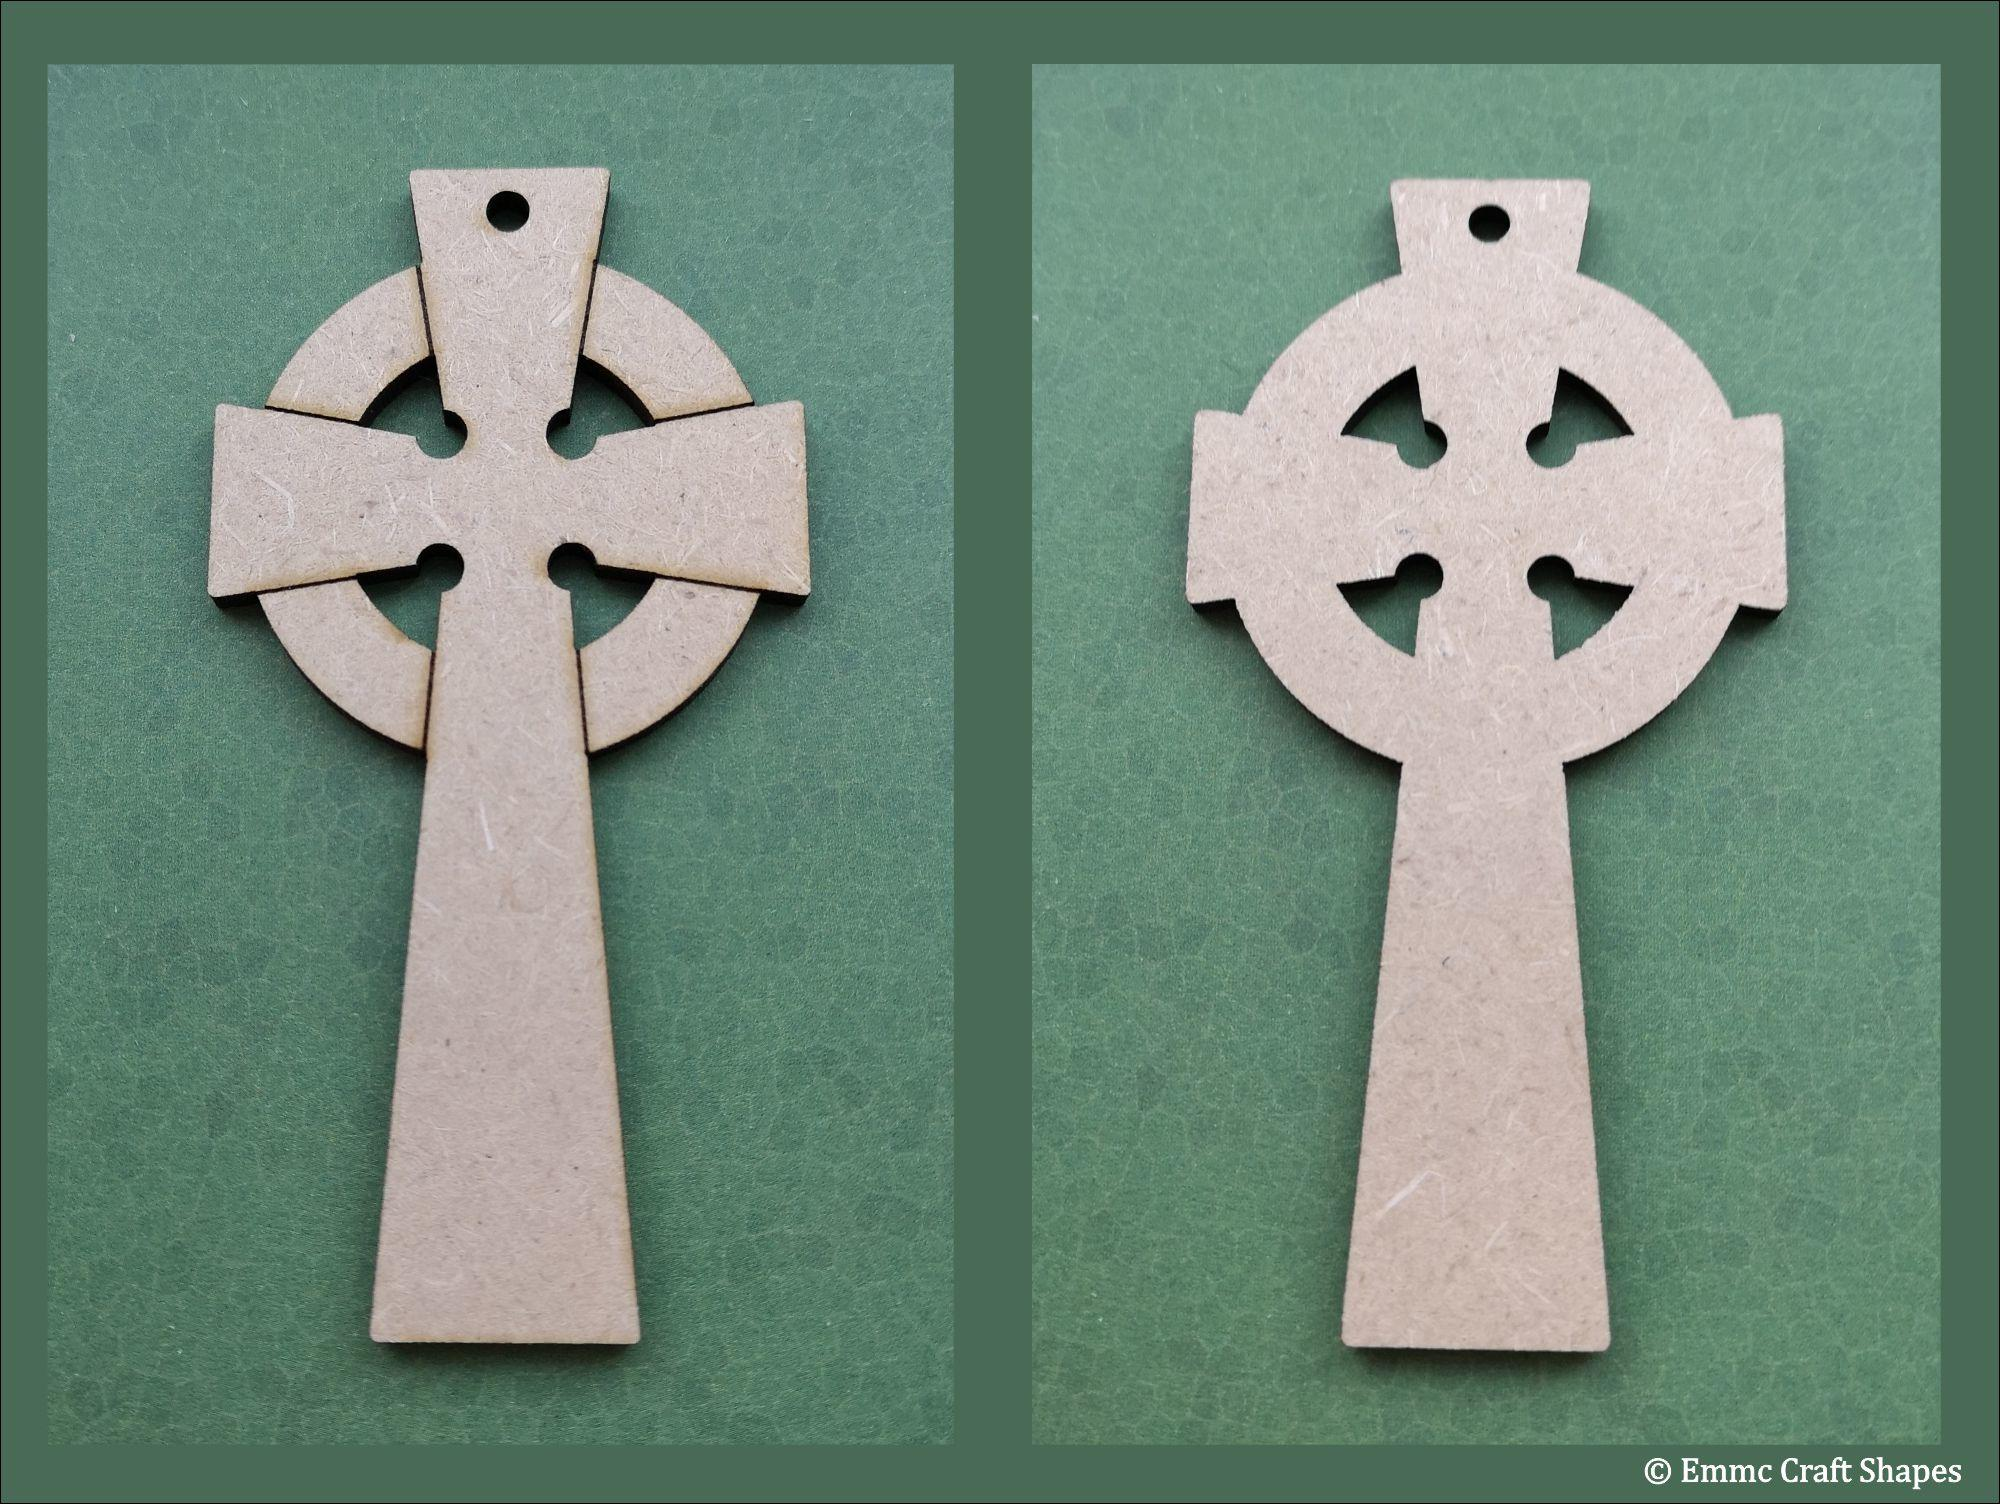 Showing the etched front and the plain back of the celtic cross. Laser cut from 3mm MDF.